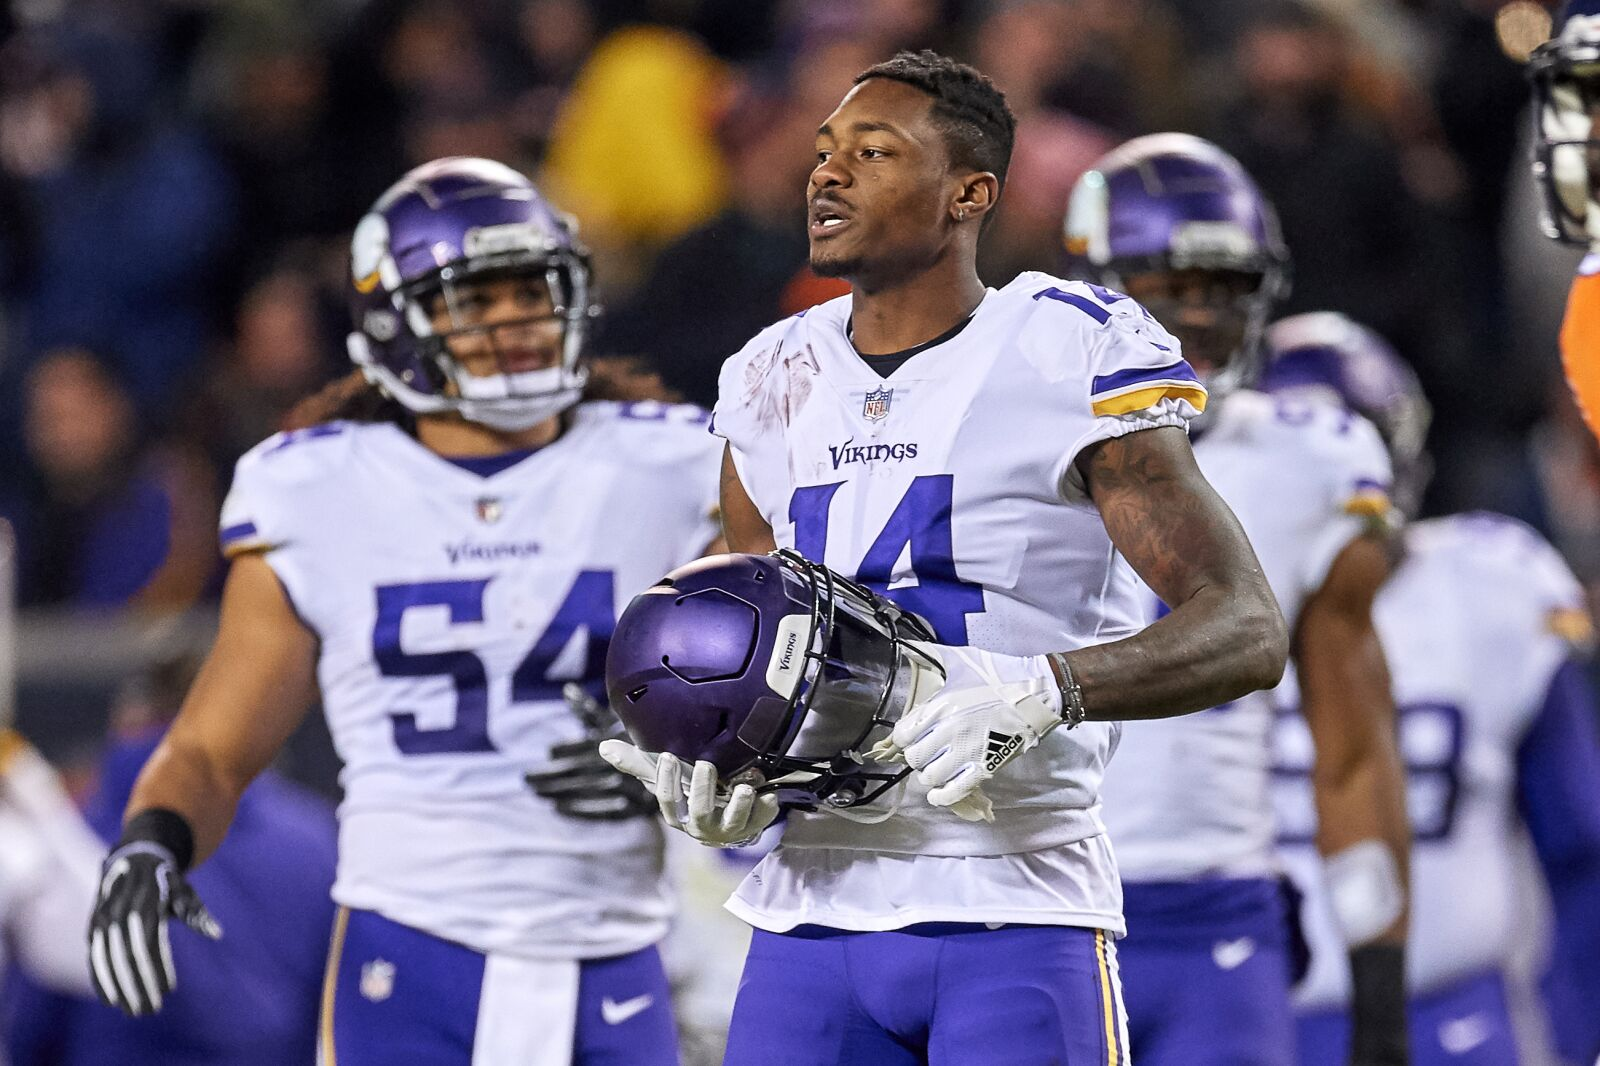 Who is the highest rated Vikings player in Madden NFL 20?